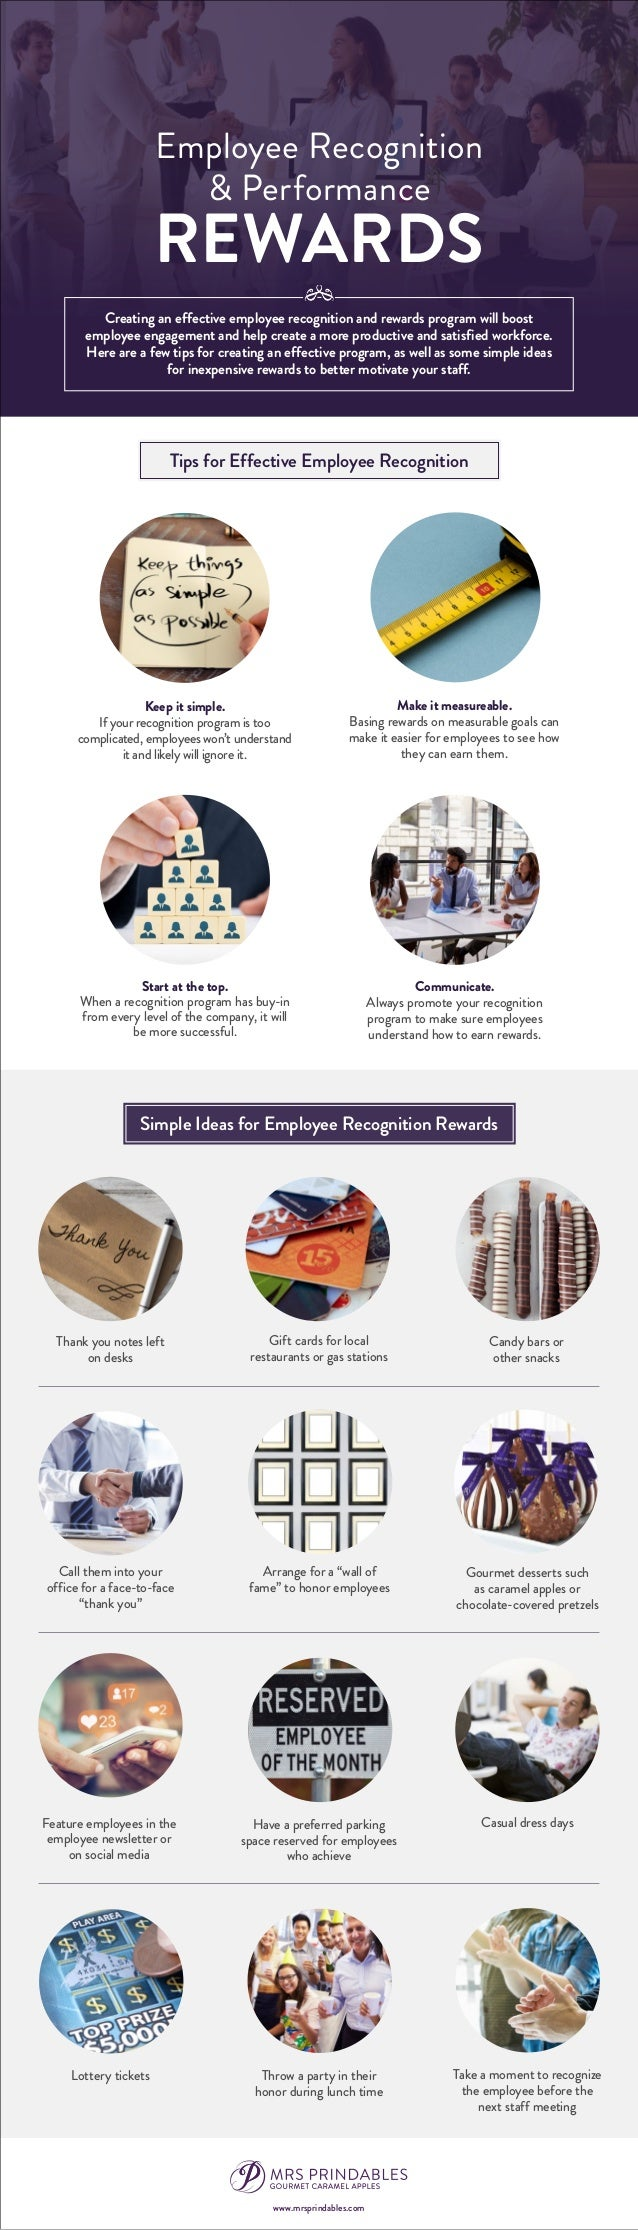 Employee Recognition & Performance Rewards